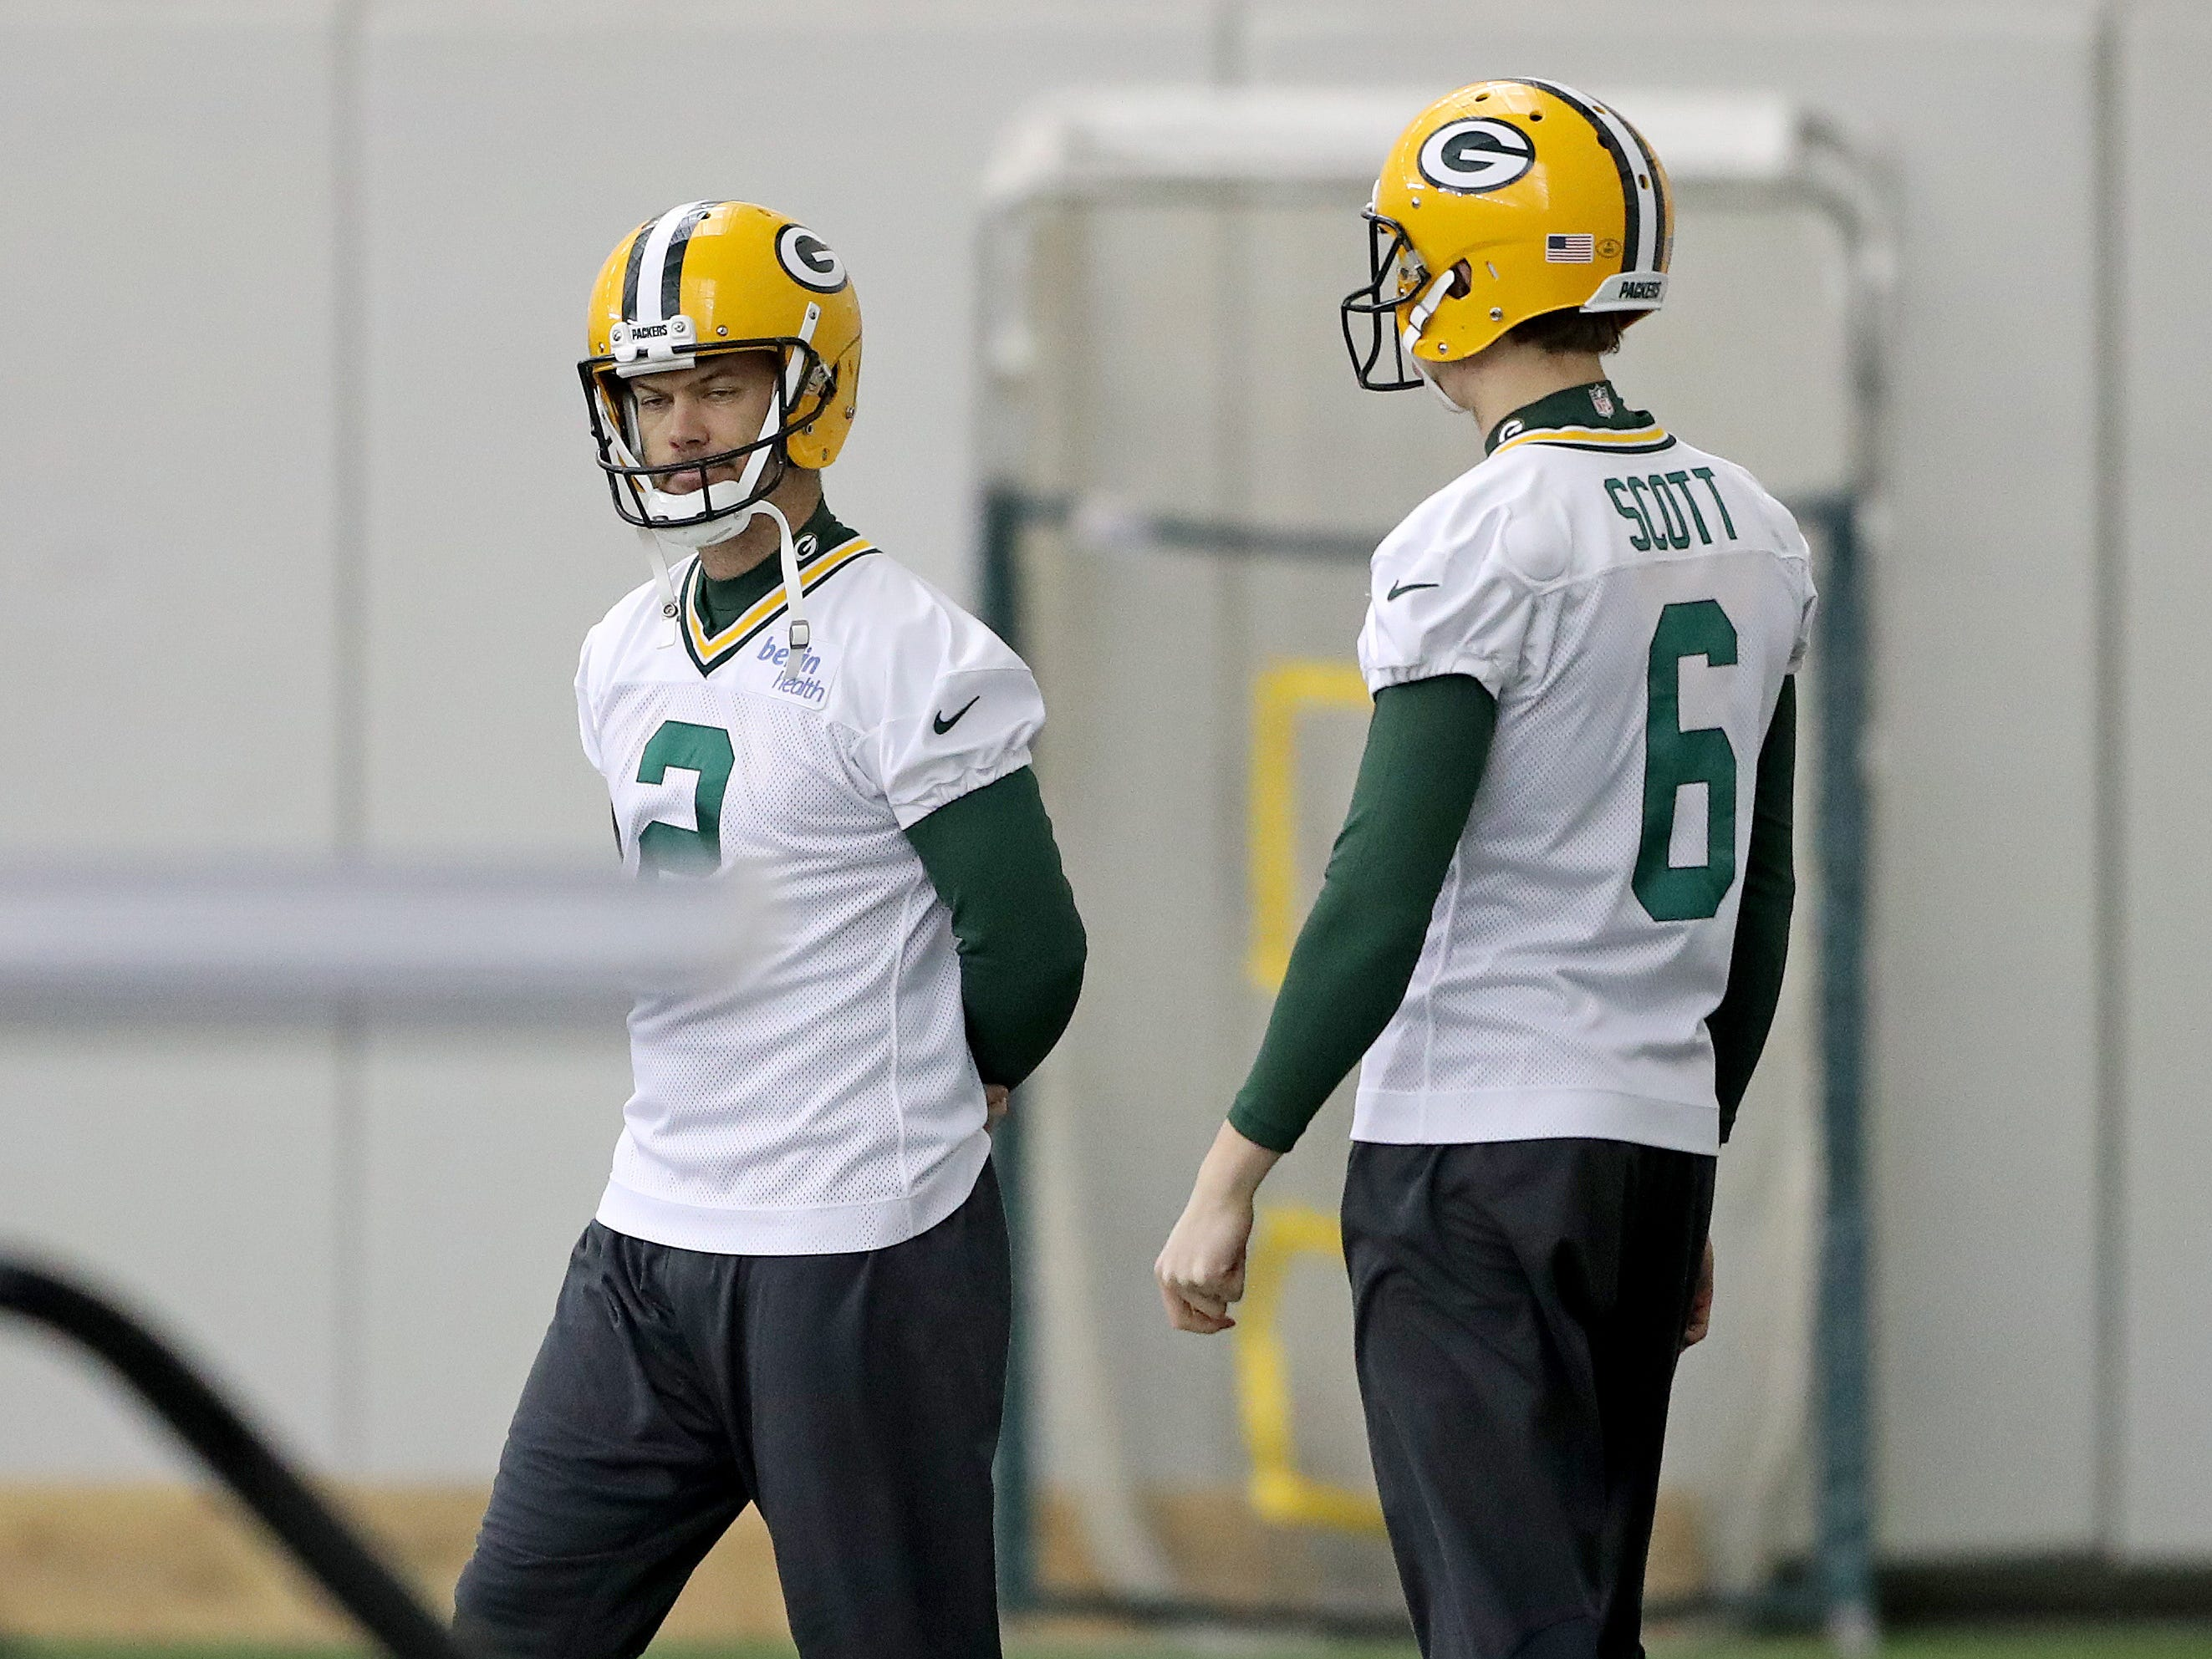 Green Bay Packers kicker Mason Crosby (2) talks with punter J.K. Scott (6) during practice Wednesday, December 5, 2018 inside the Don Hutson Center in Ashwaubenon, WIs.